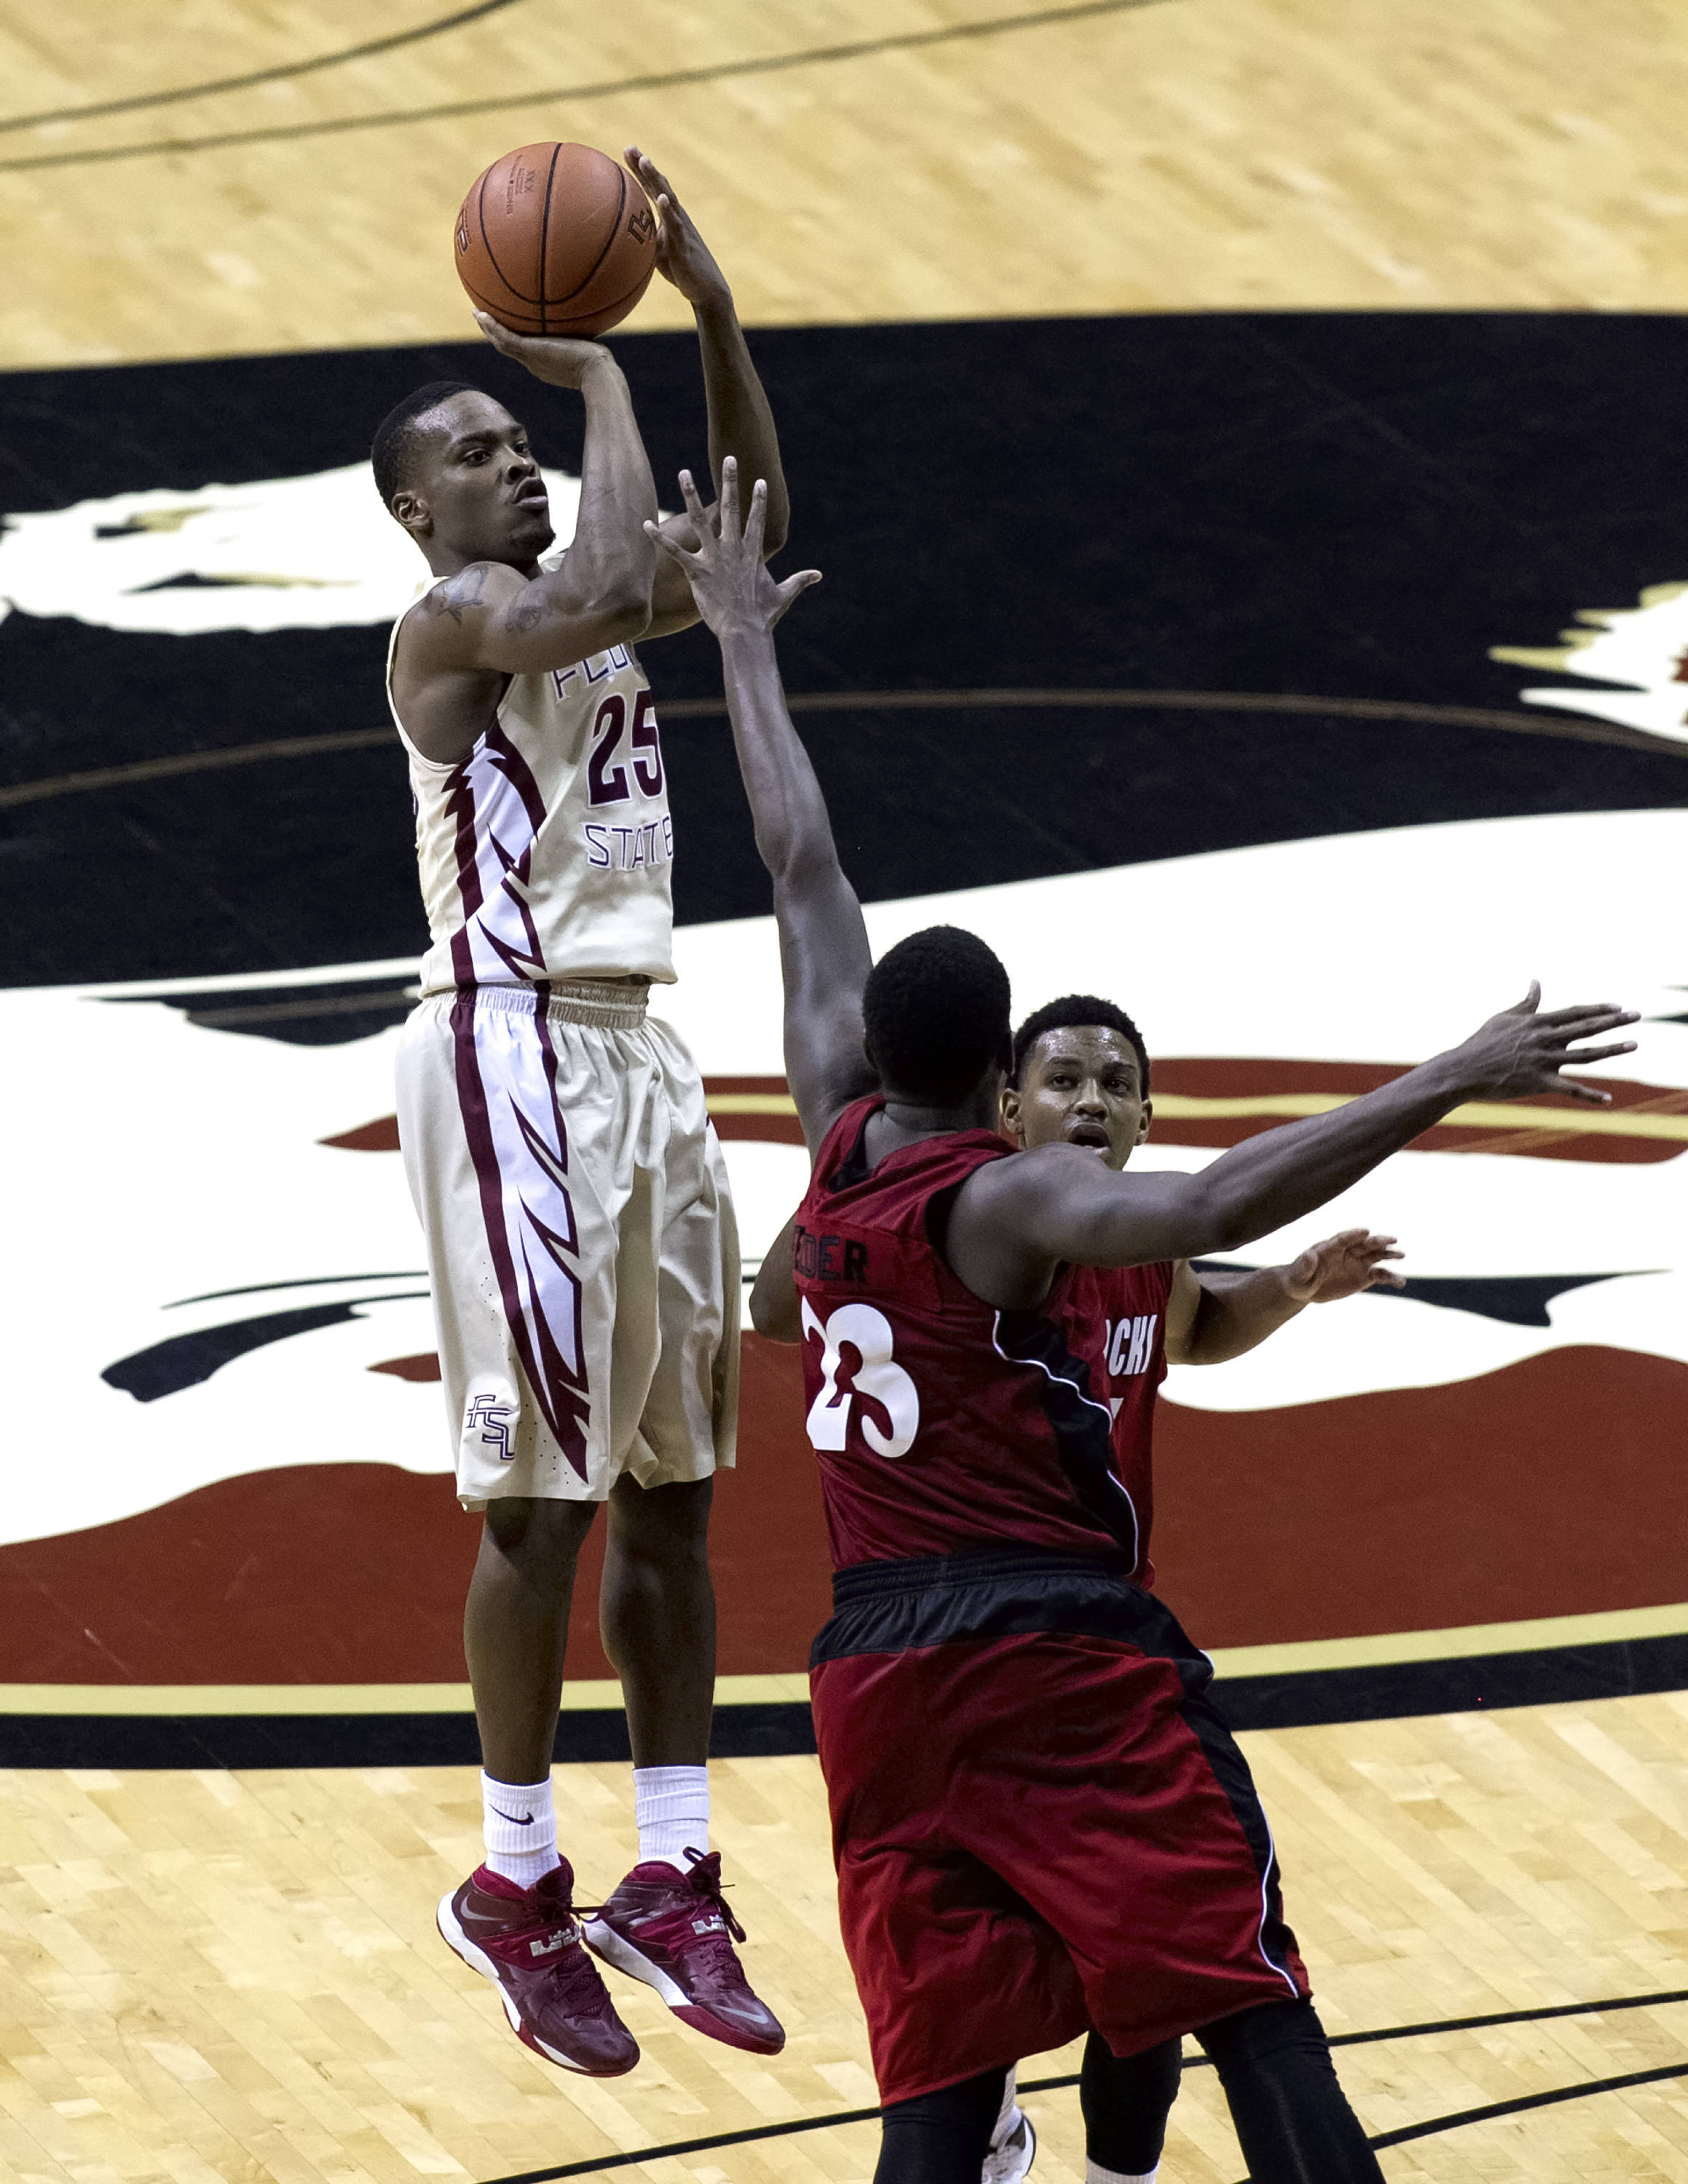 Aaron Thomas (25) gets up high on his jumper, FSU vs Jacksonville State, 12-08-13,  (Photo by Steve Musco)